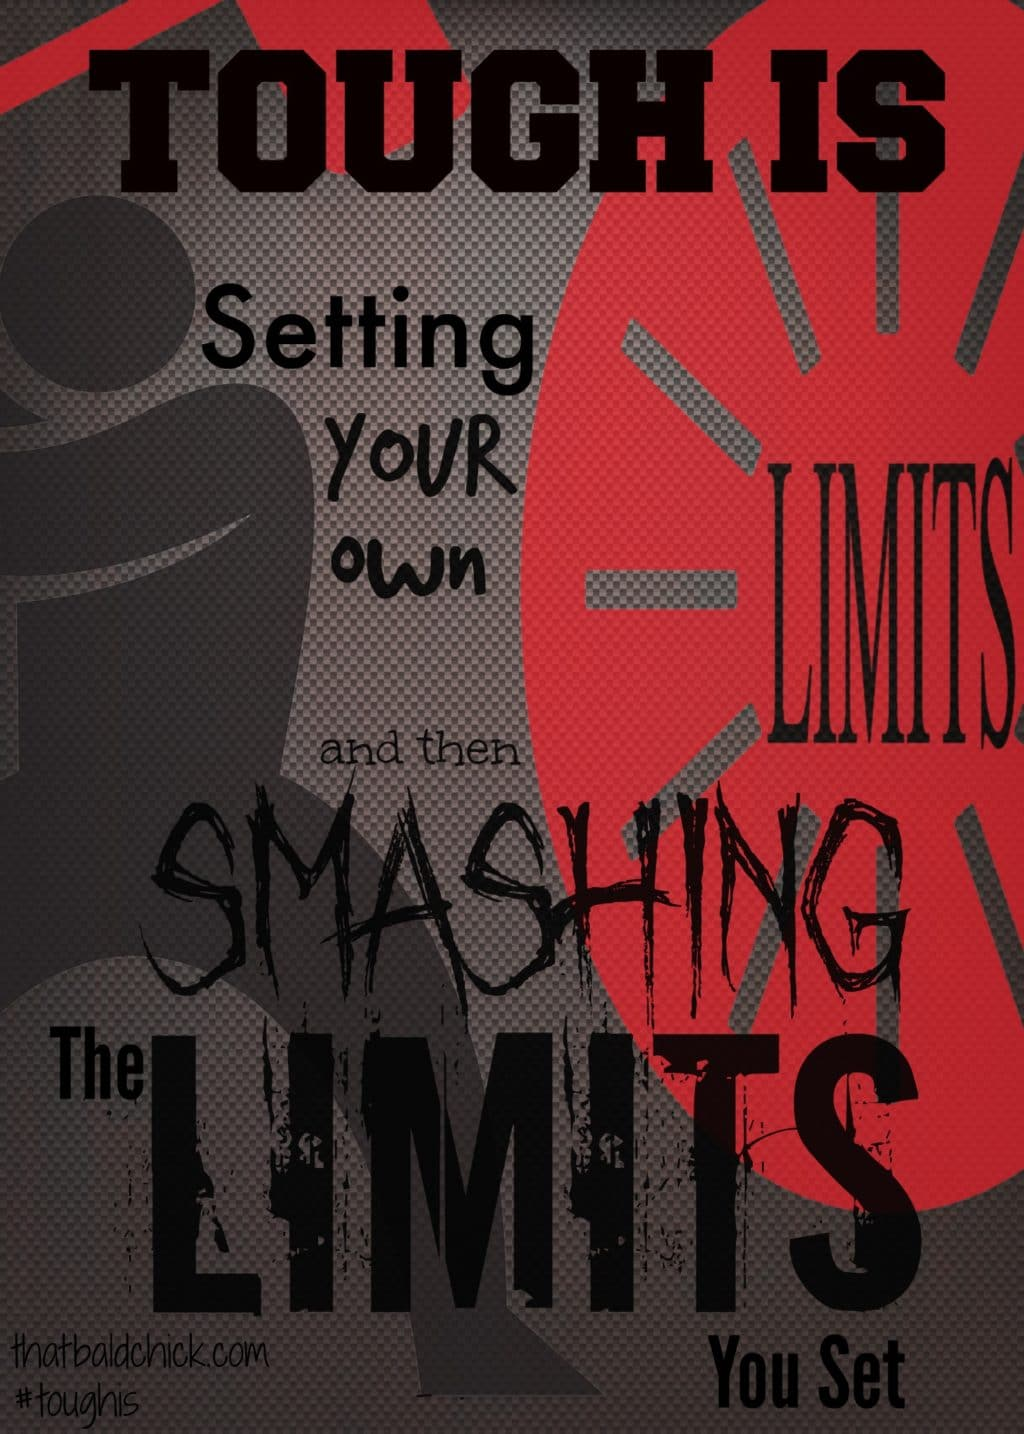 Tough Is Setting Your Own Limits and then Smashing the Limits You Set